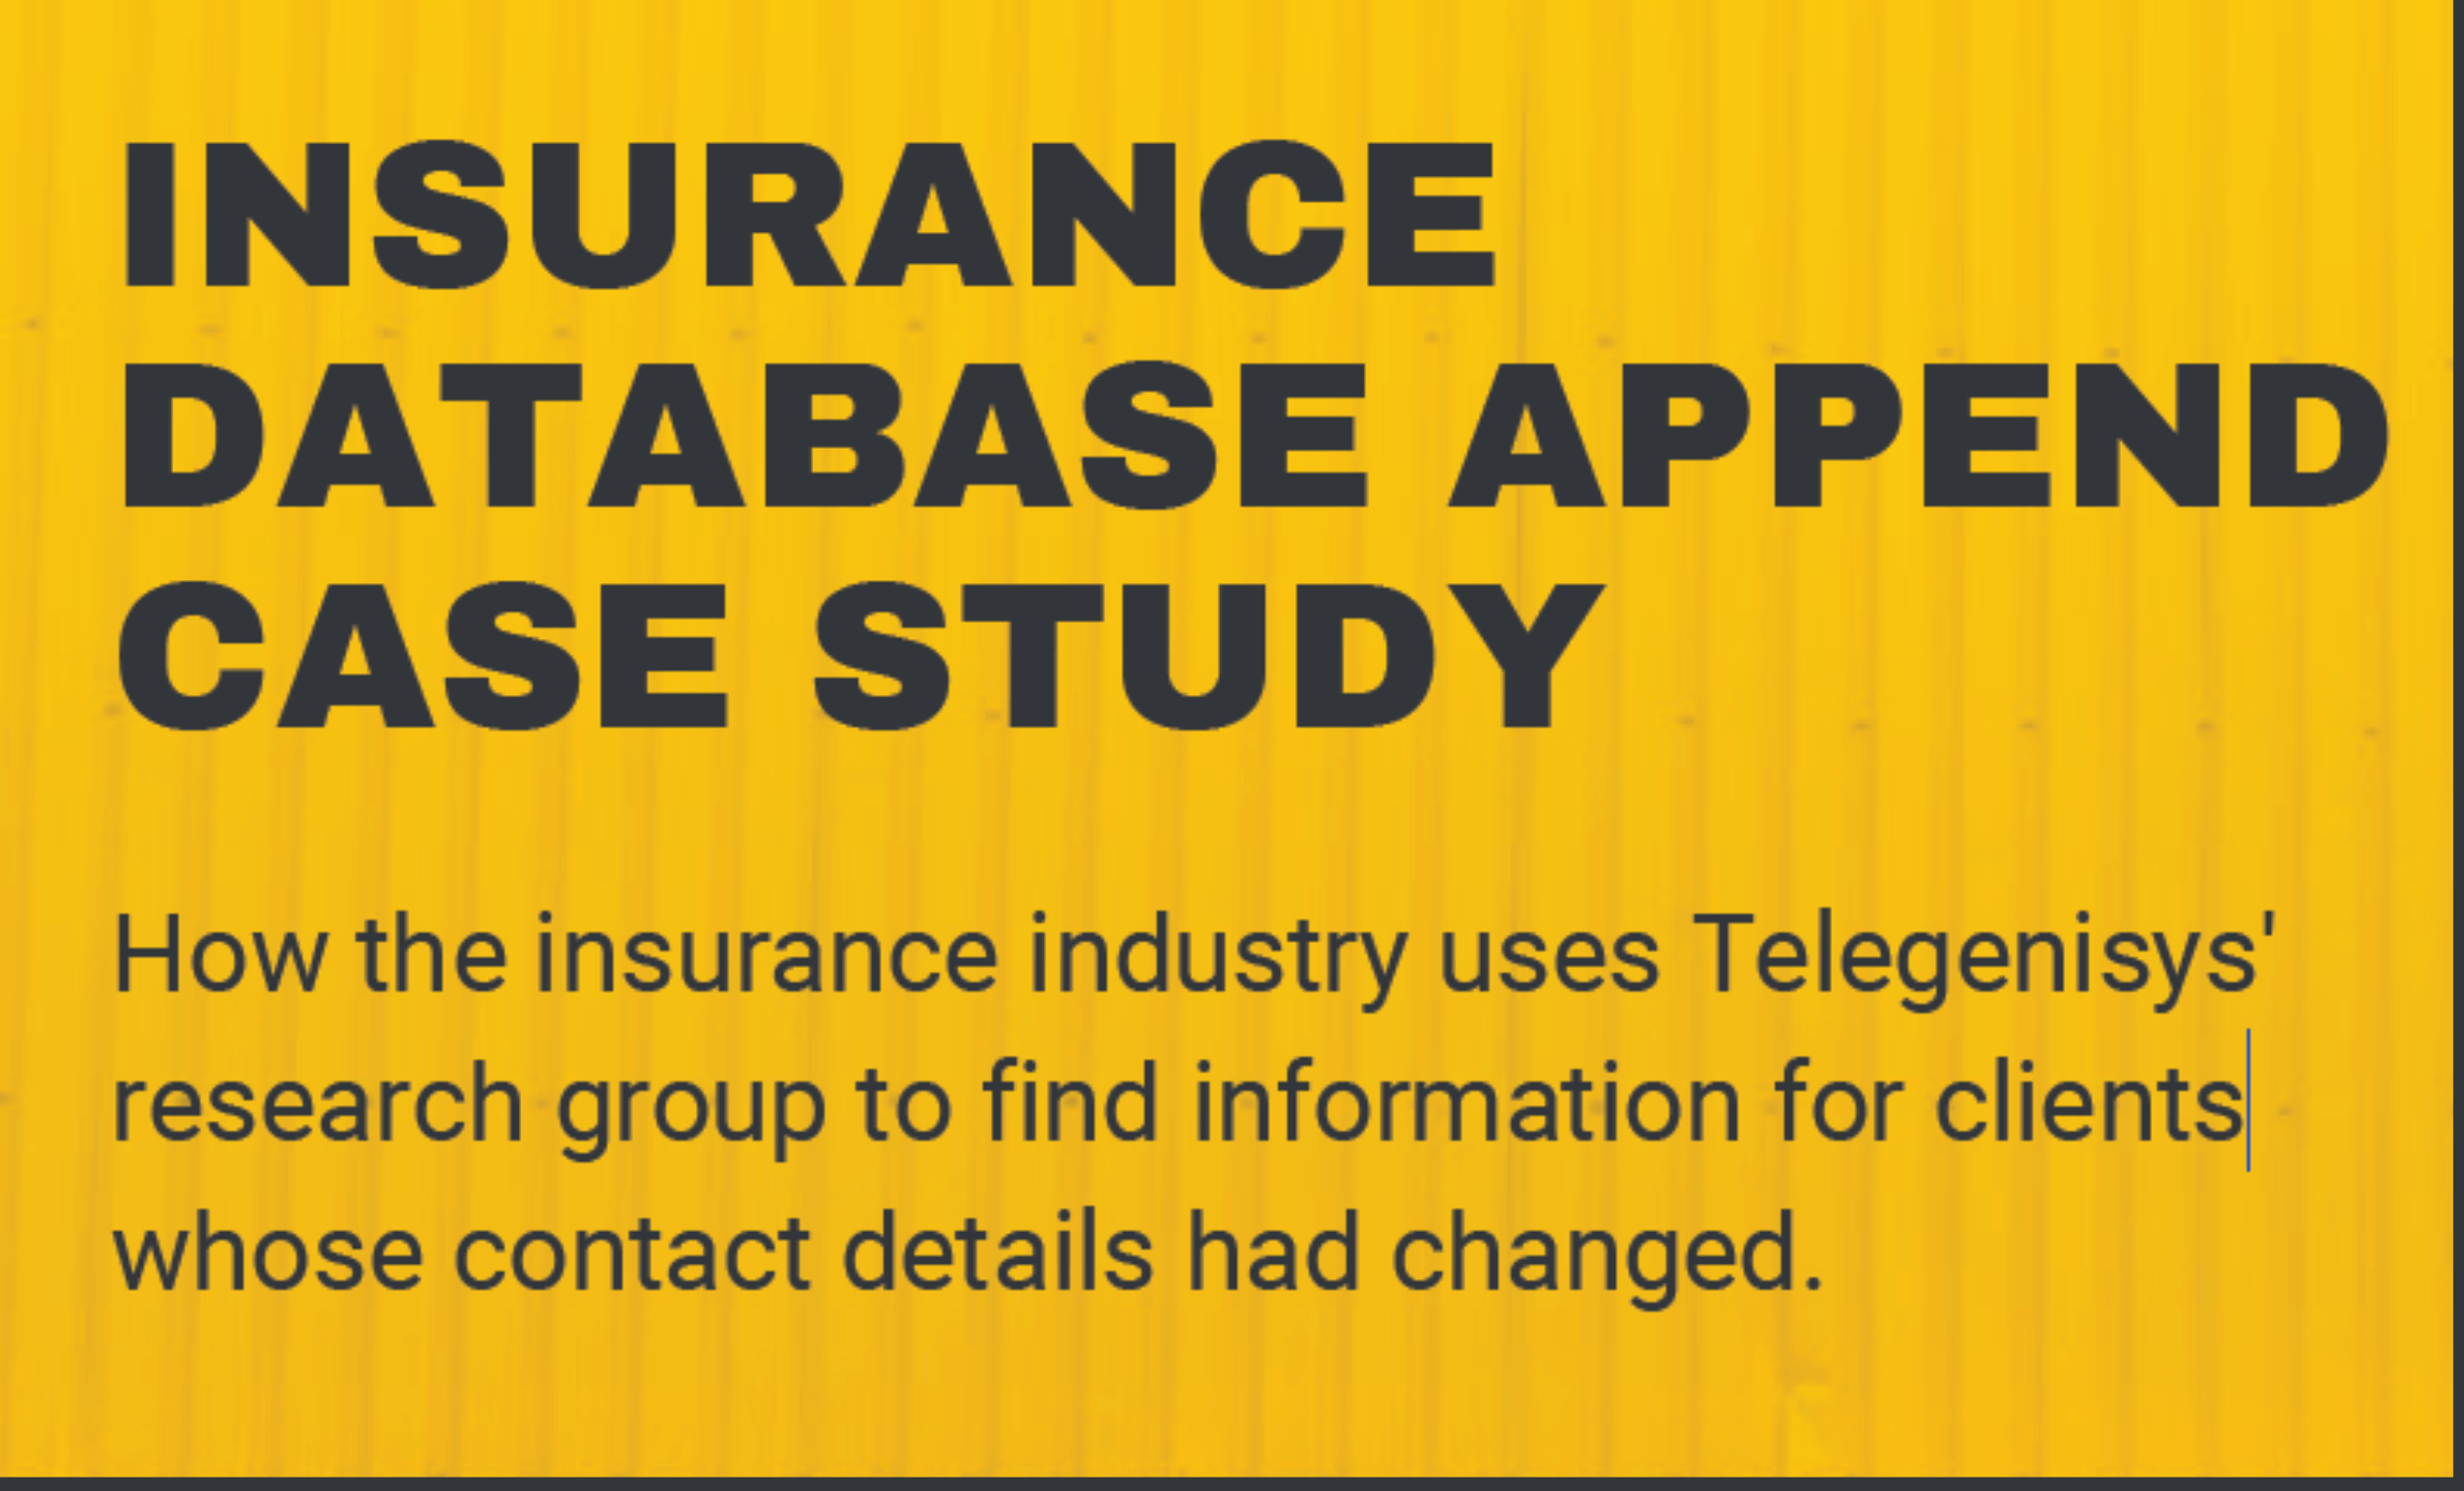 Insurance database append case study